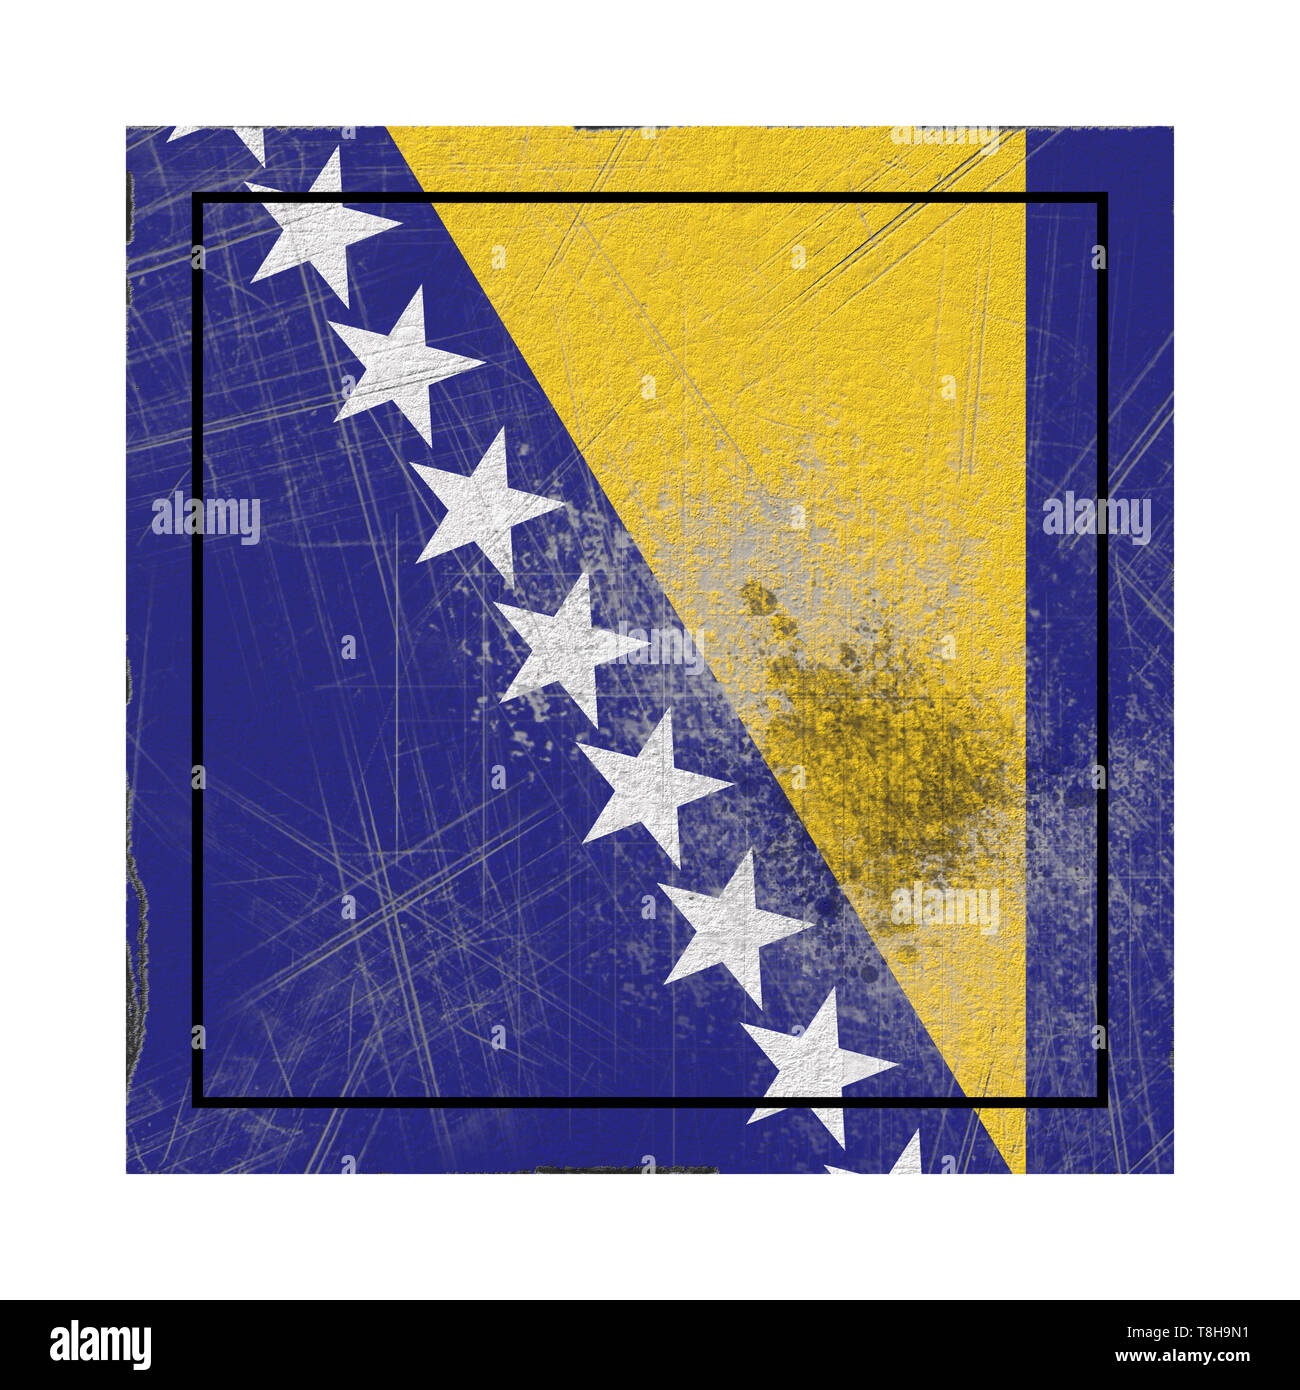 3d rendering of a Bosnia and Herzegovina country flag on a rusty surface - Stock Image